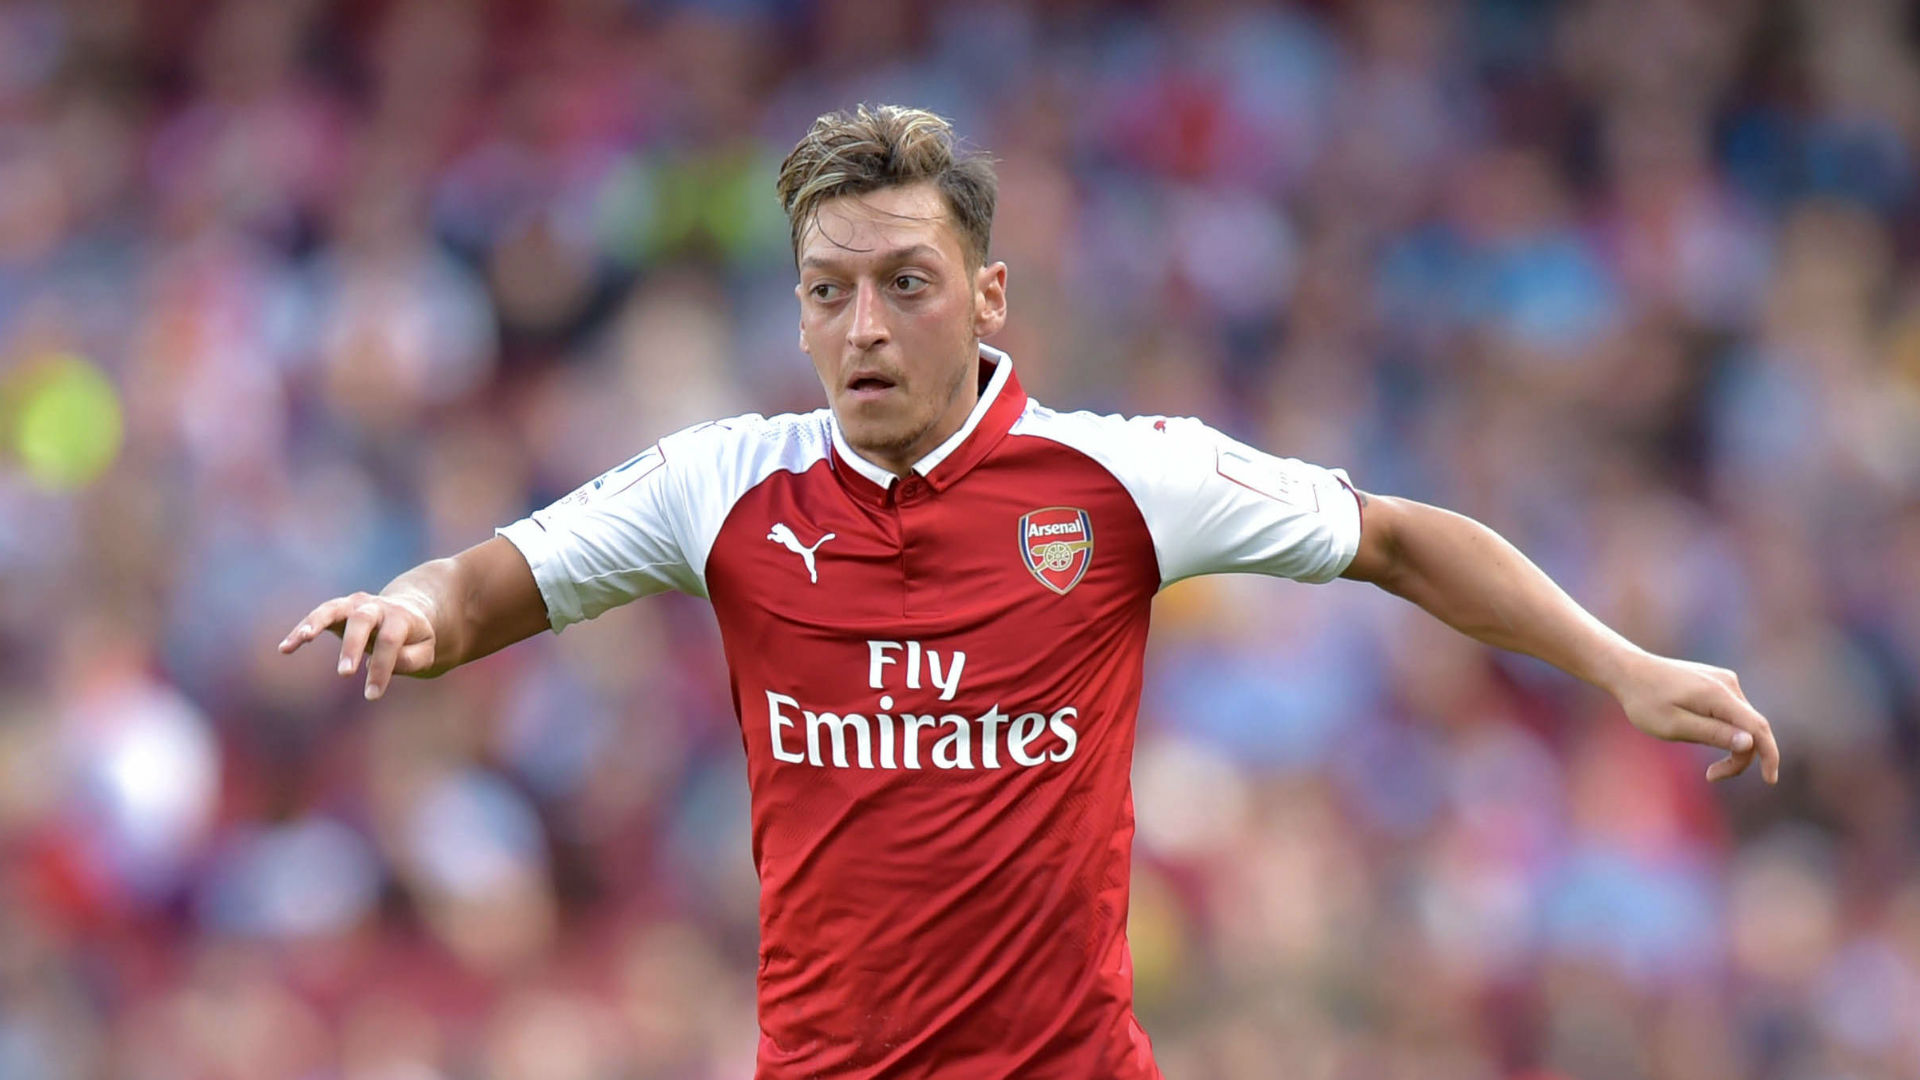 Ozil dropped from Germany squad ahead of World Cup qualifiers | Soccer Sport News